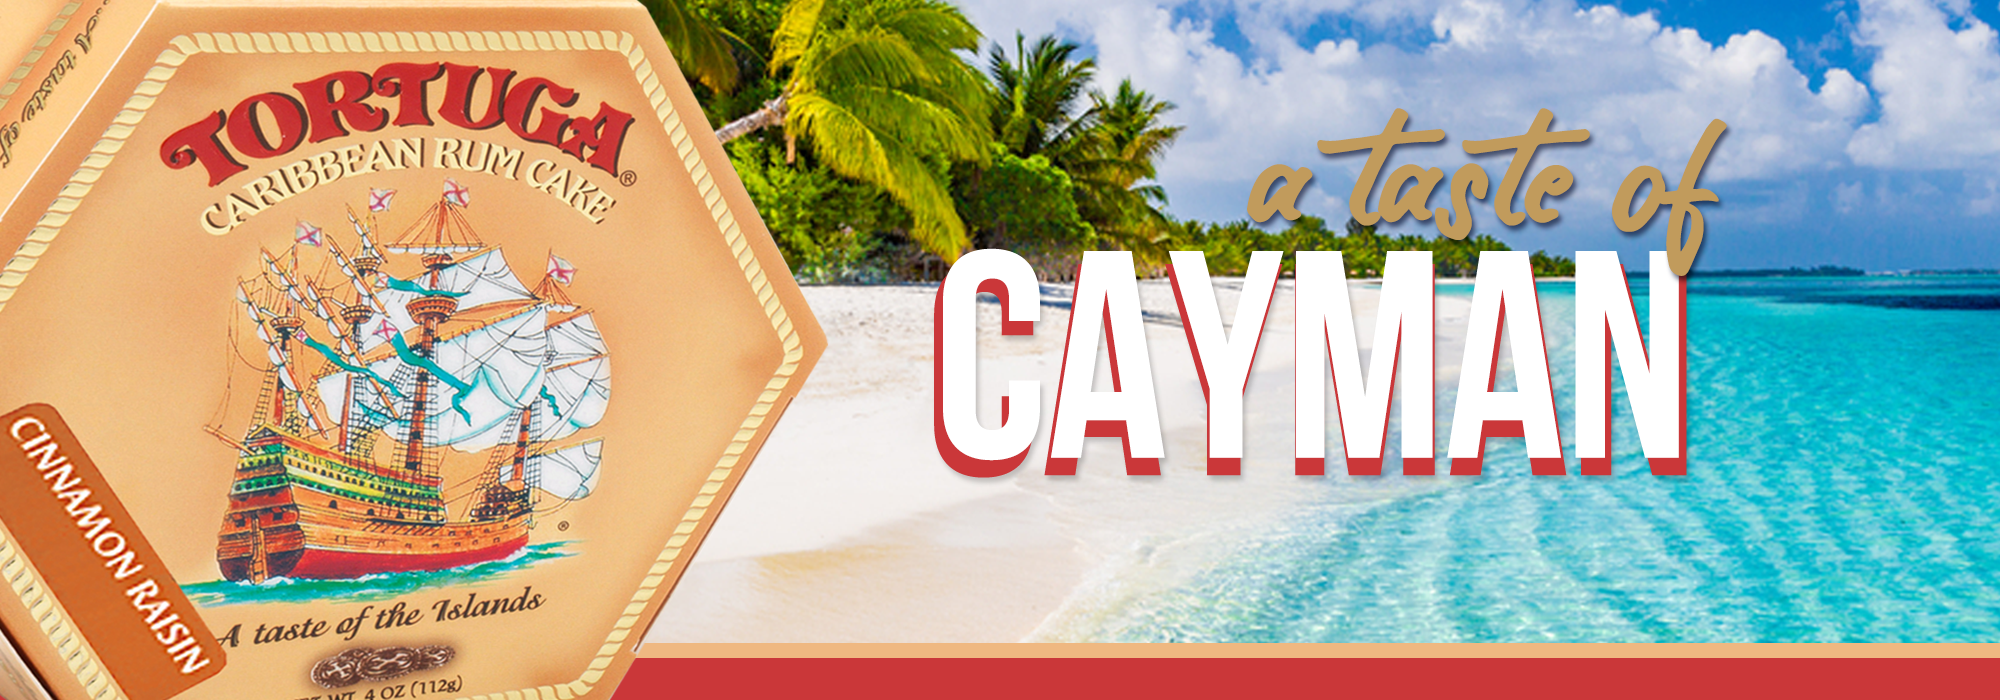 banner-islands-cayman-islands.png